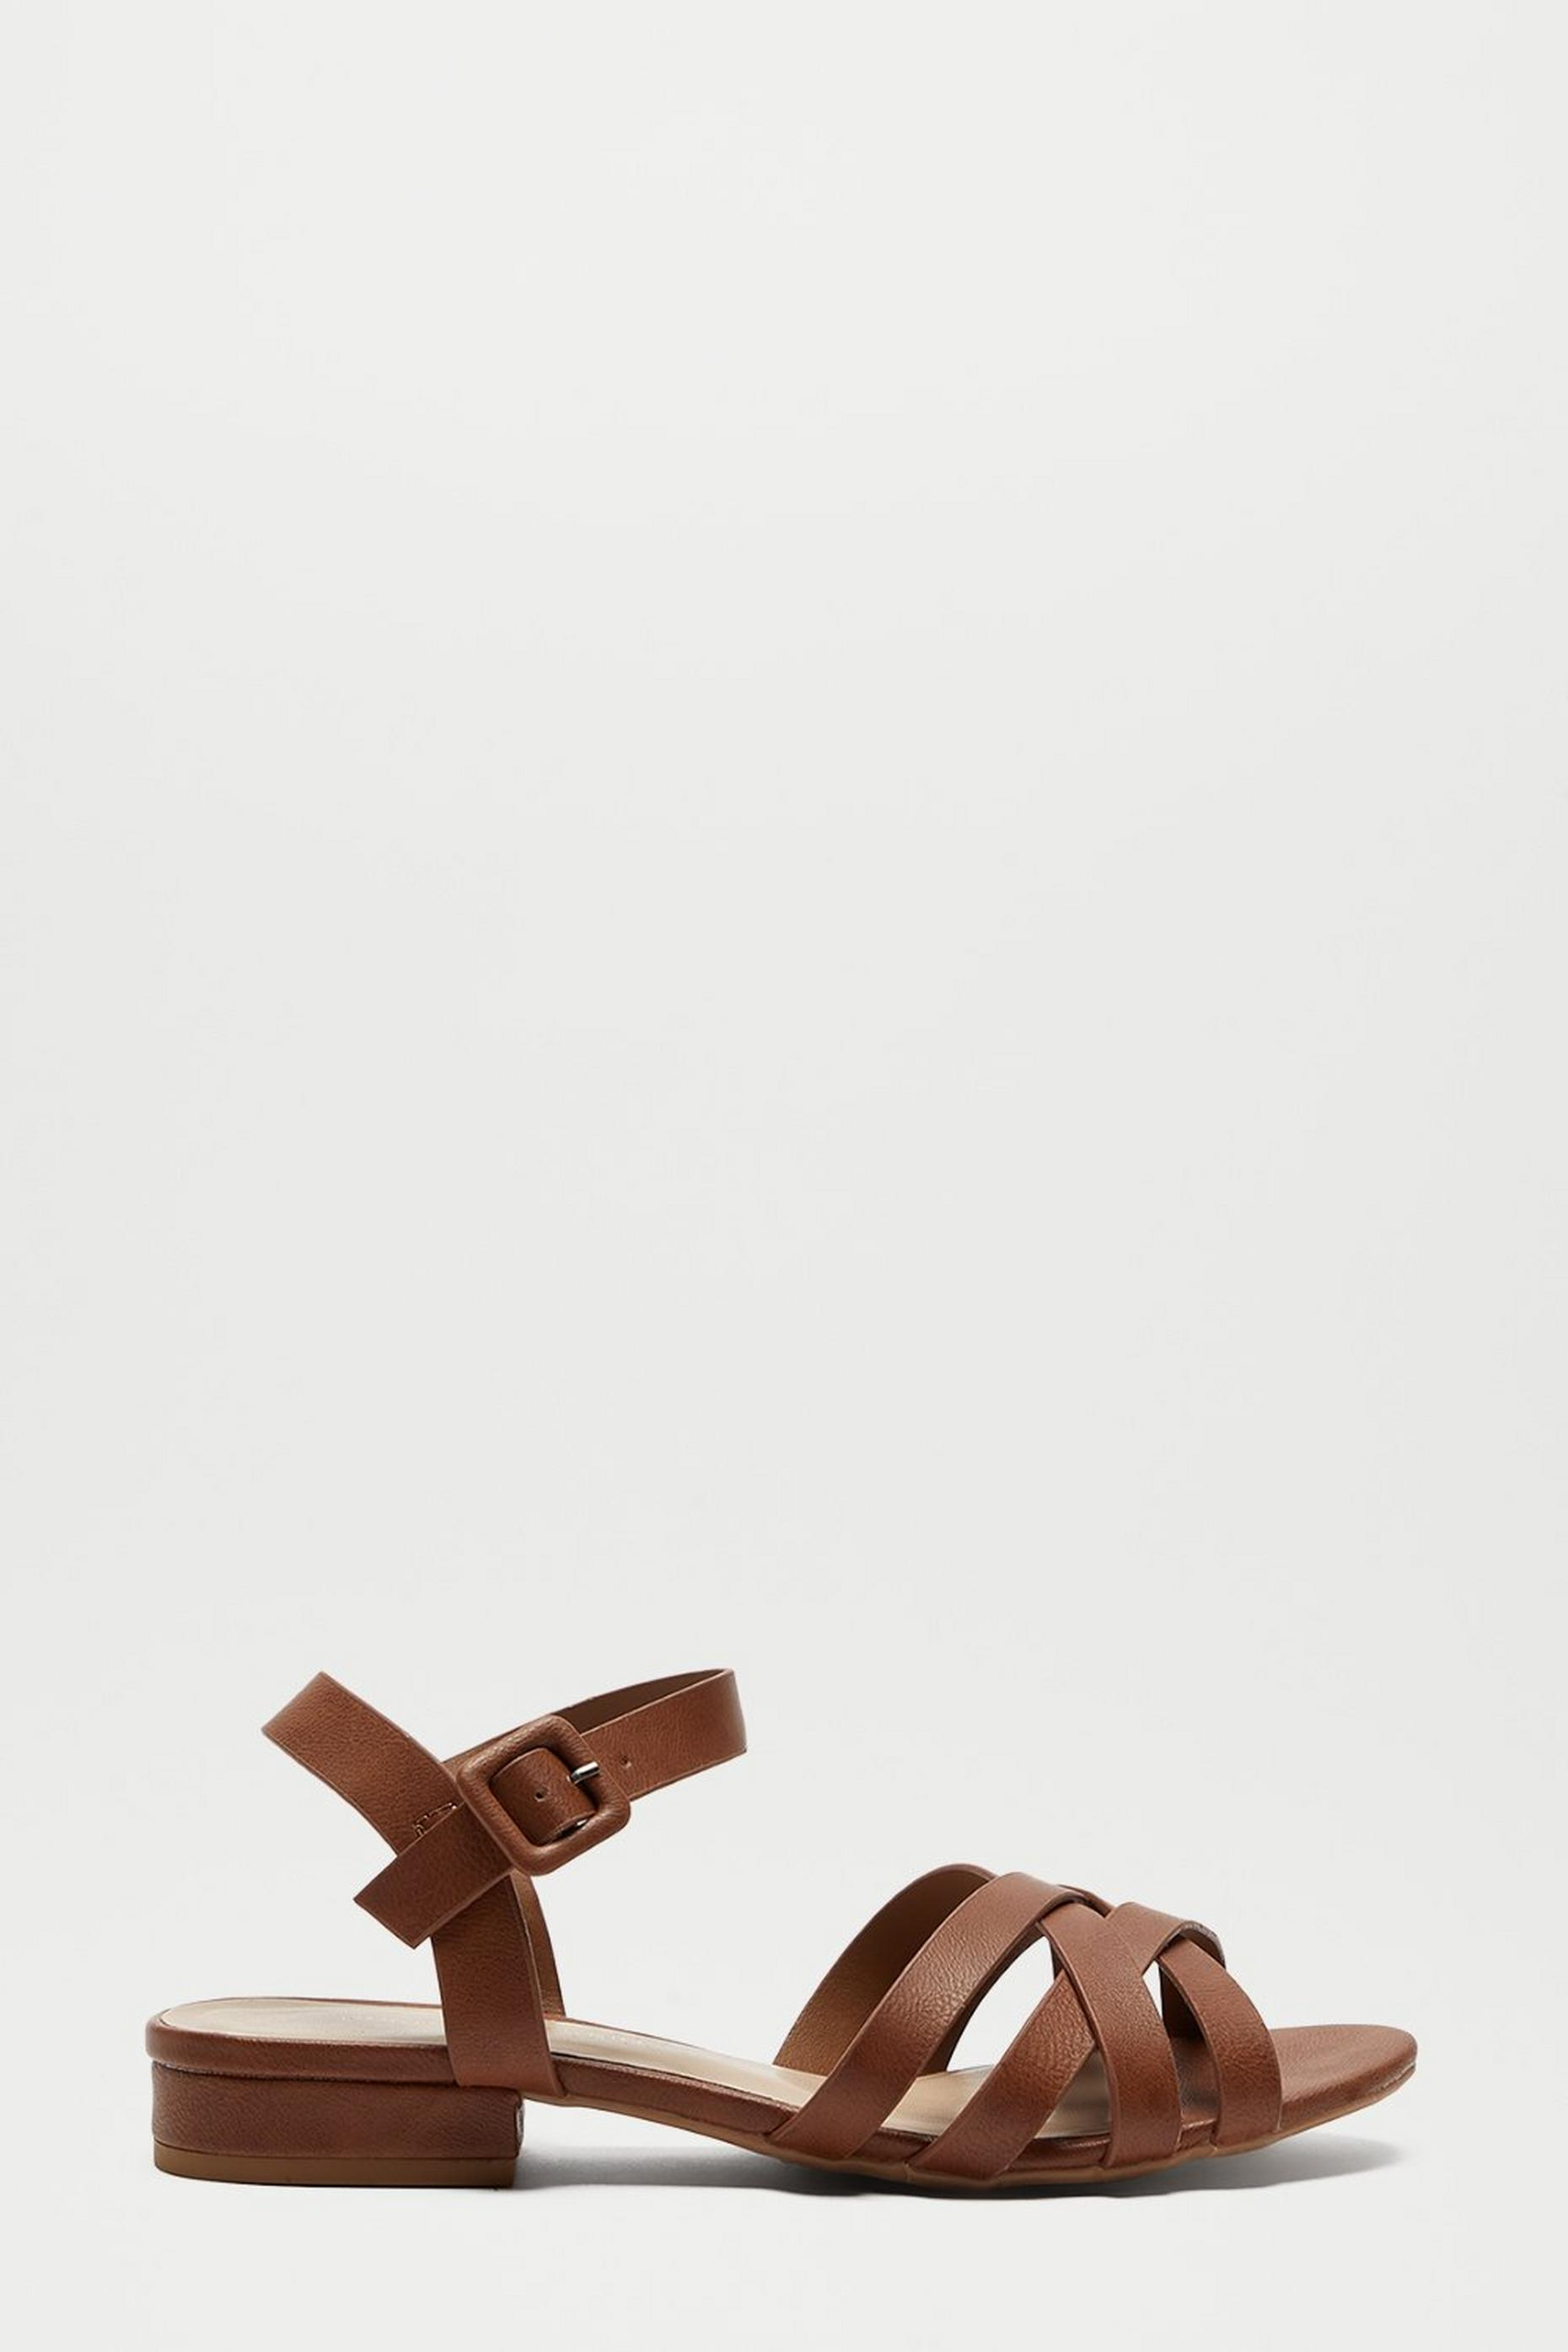 Tan Shelly Cross Strap Heeled SandalS